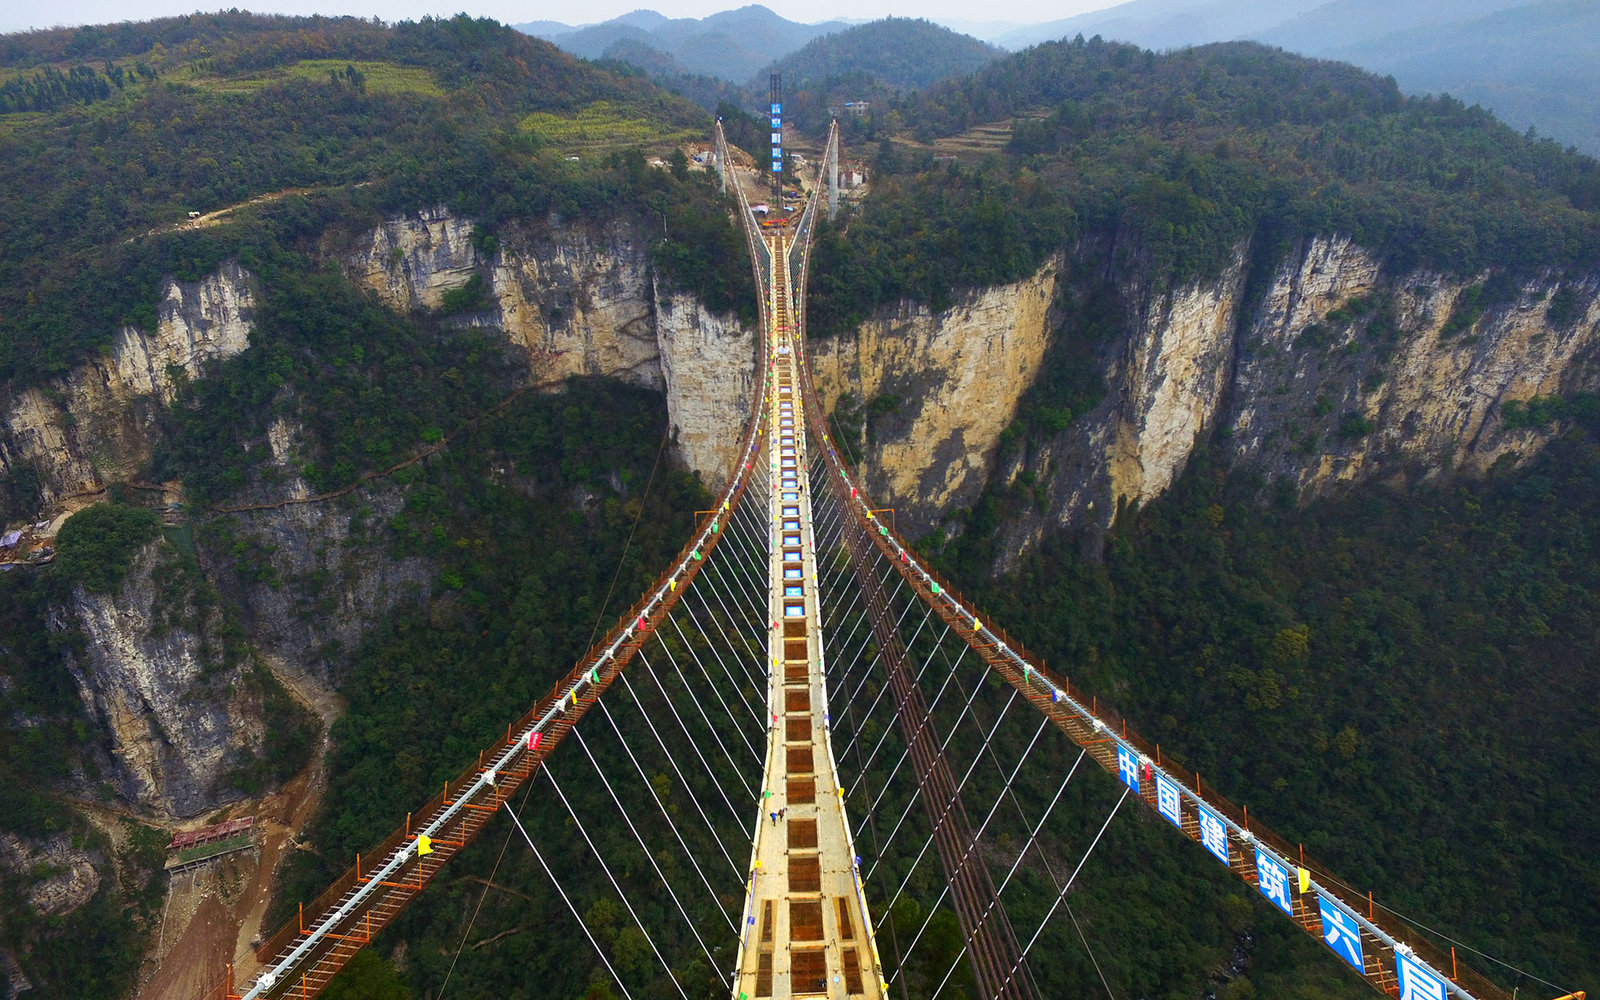 ZHANGJIAJIE, CHINA - DECEMBER 03:  (CHINA OUT) Aerial view of the glass-bottom bridge with steel beams completed at Tianmenshan National Forest Park on December 3, 2015 in Zhangjiajie, Hunan Province of China. World's longest glass-bottom bridge between t